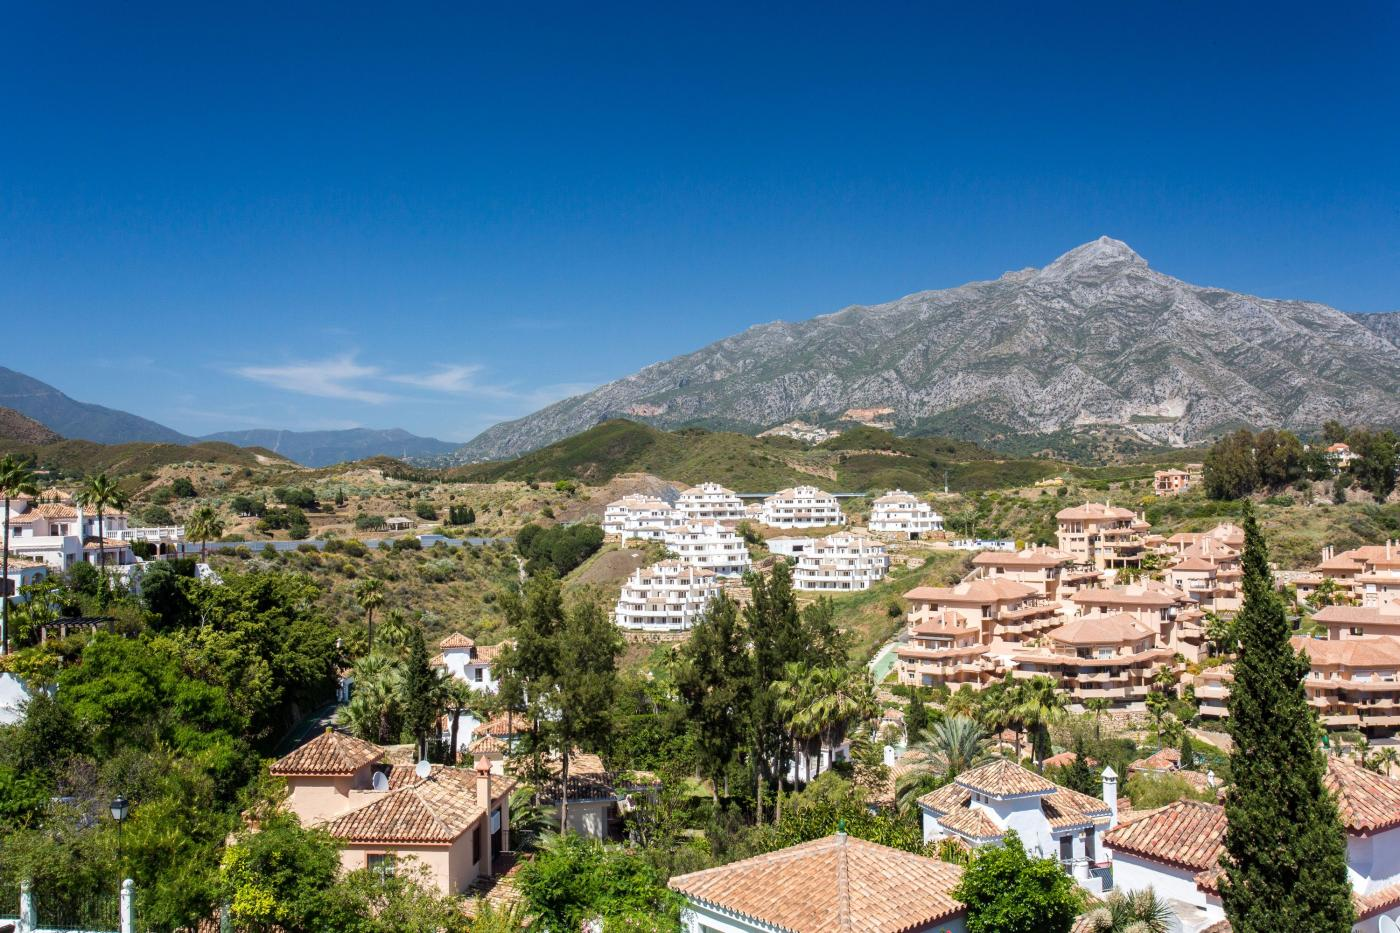 3 Bedroom Penthouse for Sale in Nueva Andalucia |